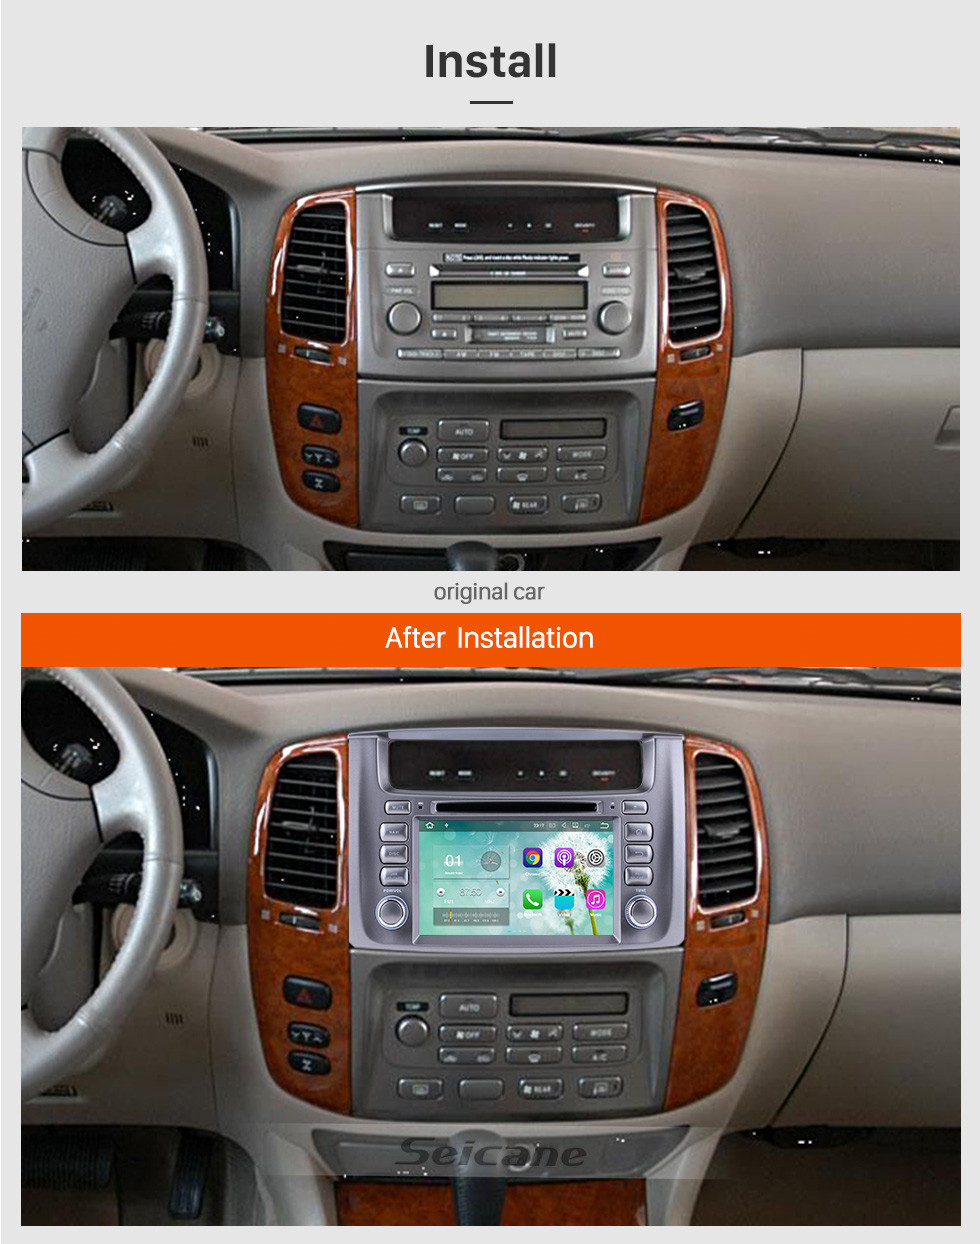 Seicane 1998-2007 Toyota  Land Cruiser Android 7.1 GPS  Radio navigation system with WIFI Bluetooth DVD player  HD touch screen OBD DVR  Backup camera TV  3G  Mirror link USB SD 16G Flash Quad-core CPU